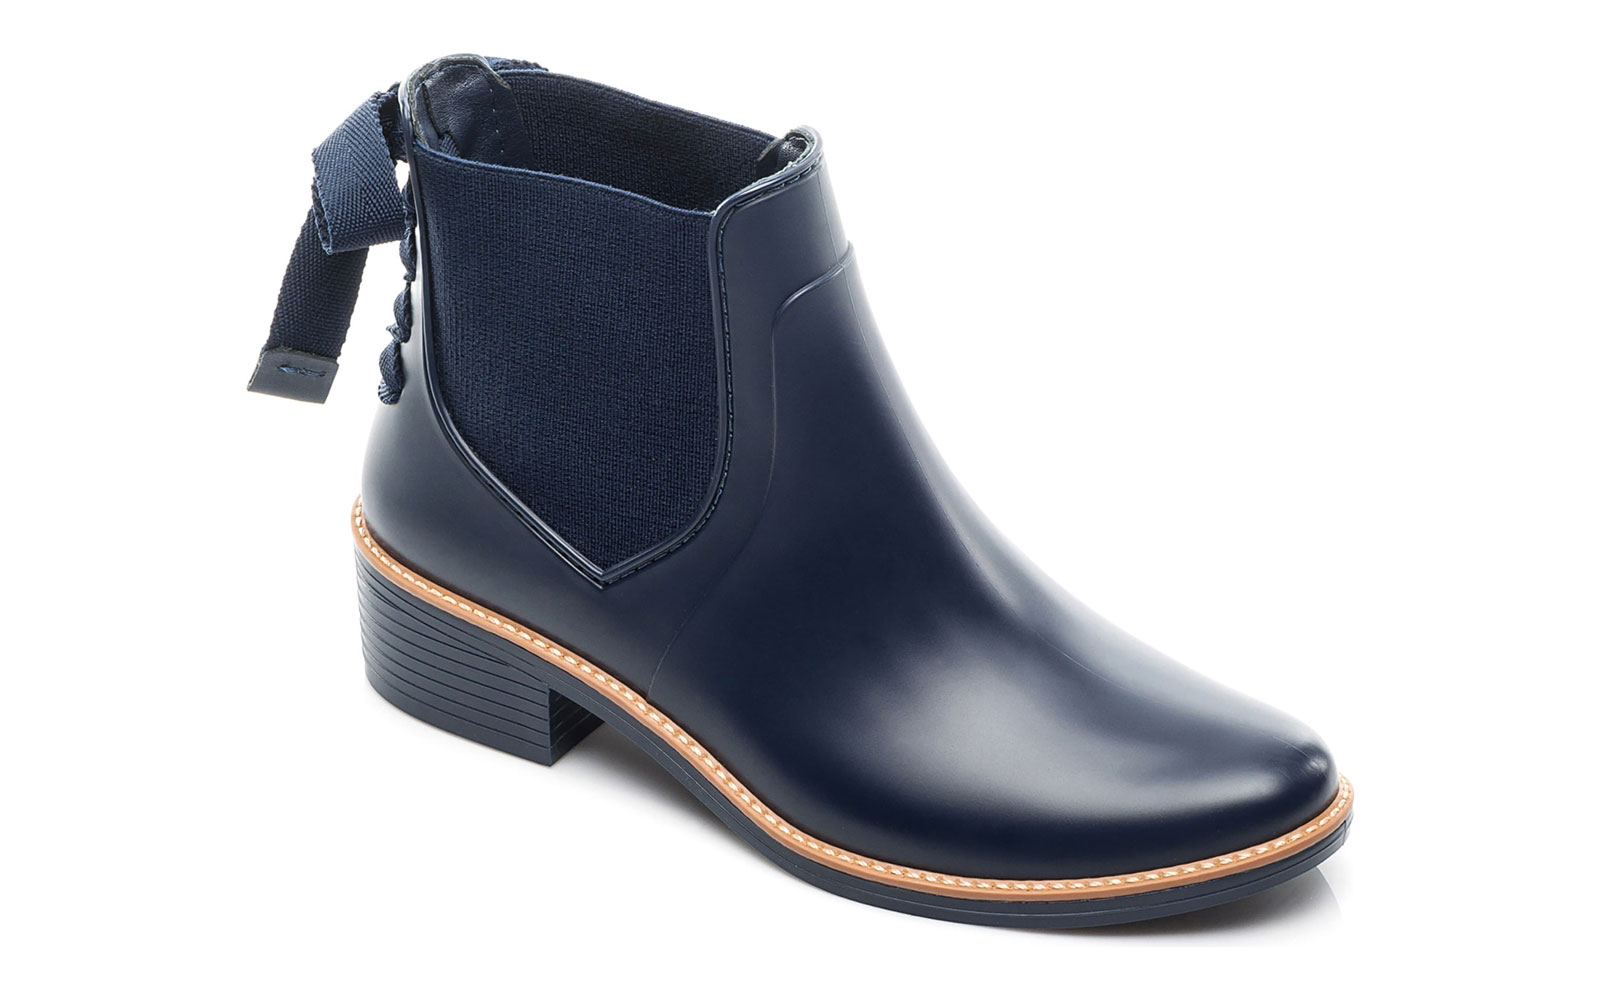 Women's short navy rain boots